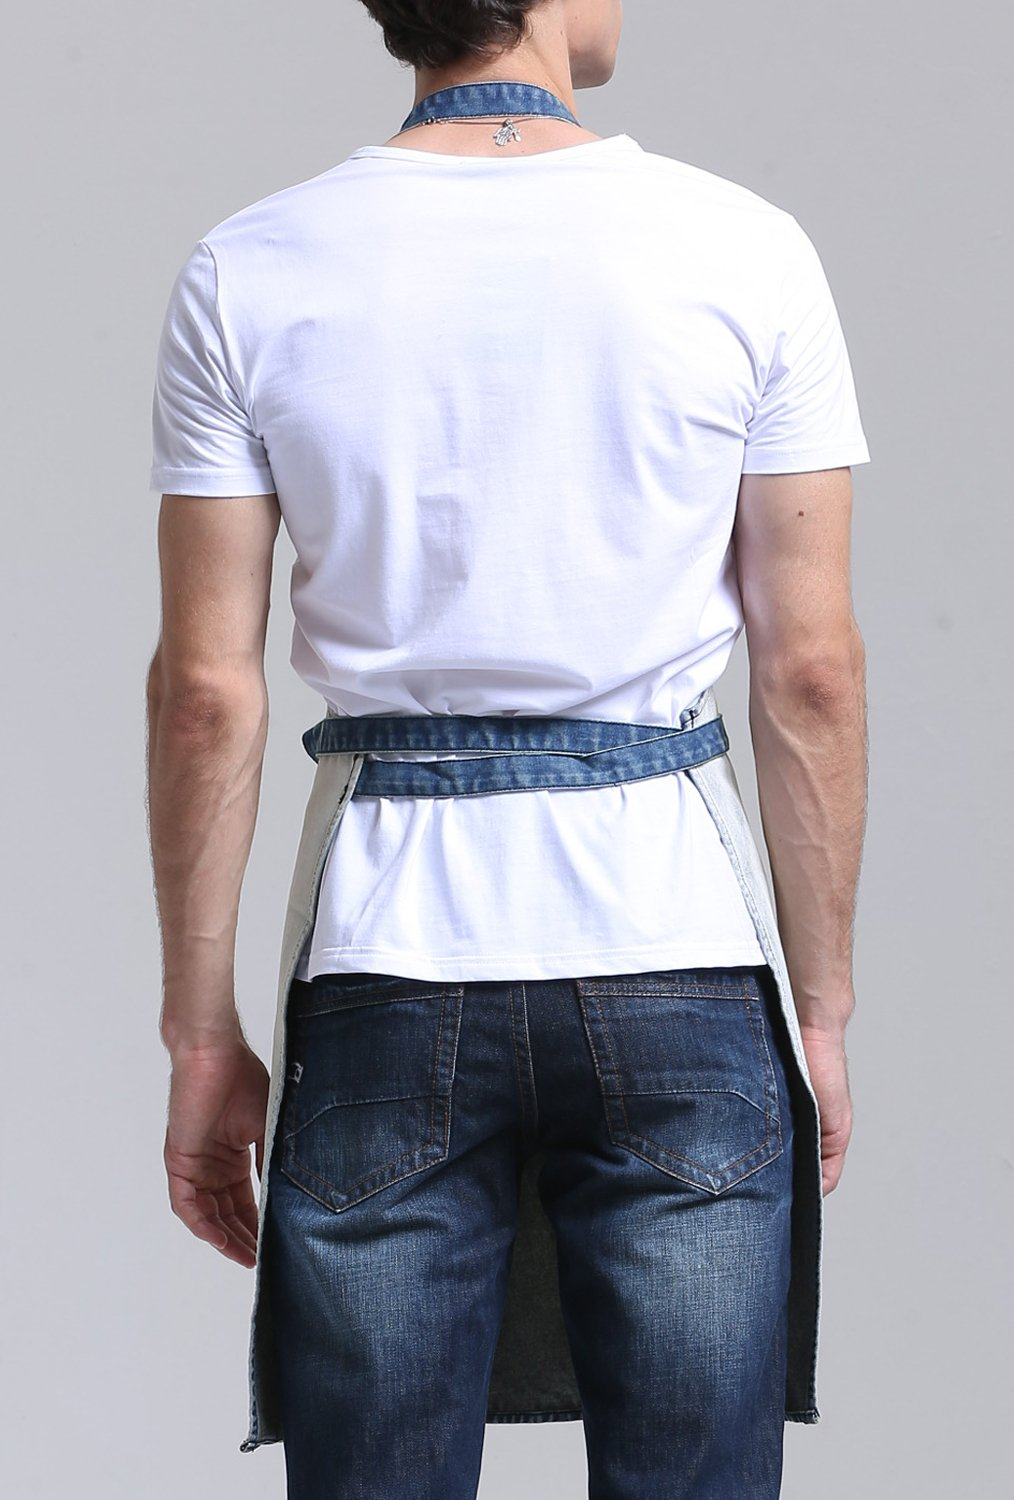 VANTOO Denim Artist Apron with 3 Pockets-Jean Painting Salon Apron-Adjustable Neck Strap-Extra Long Ties for Friends Families,White by VANTOO (Image #3)